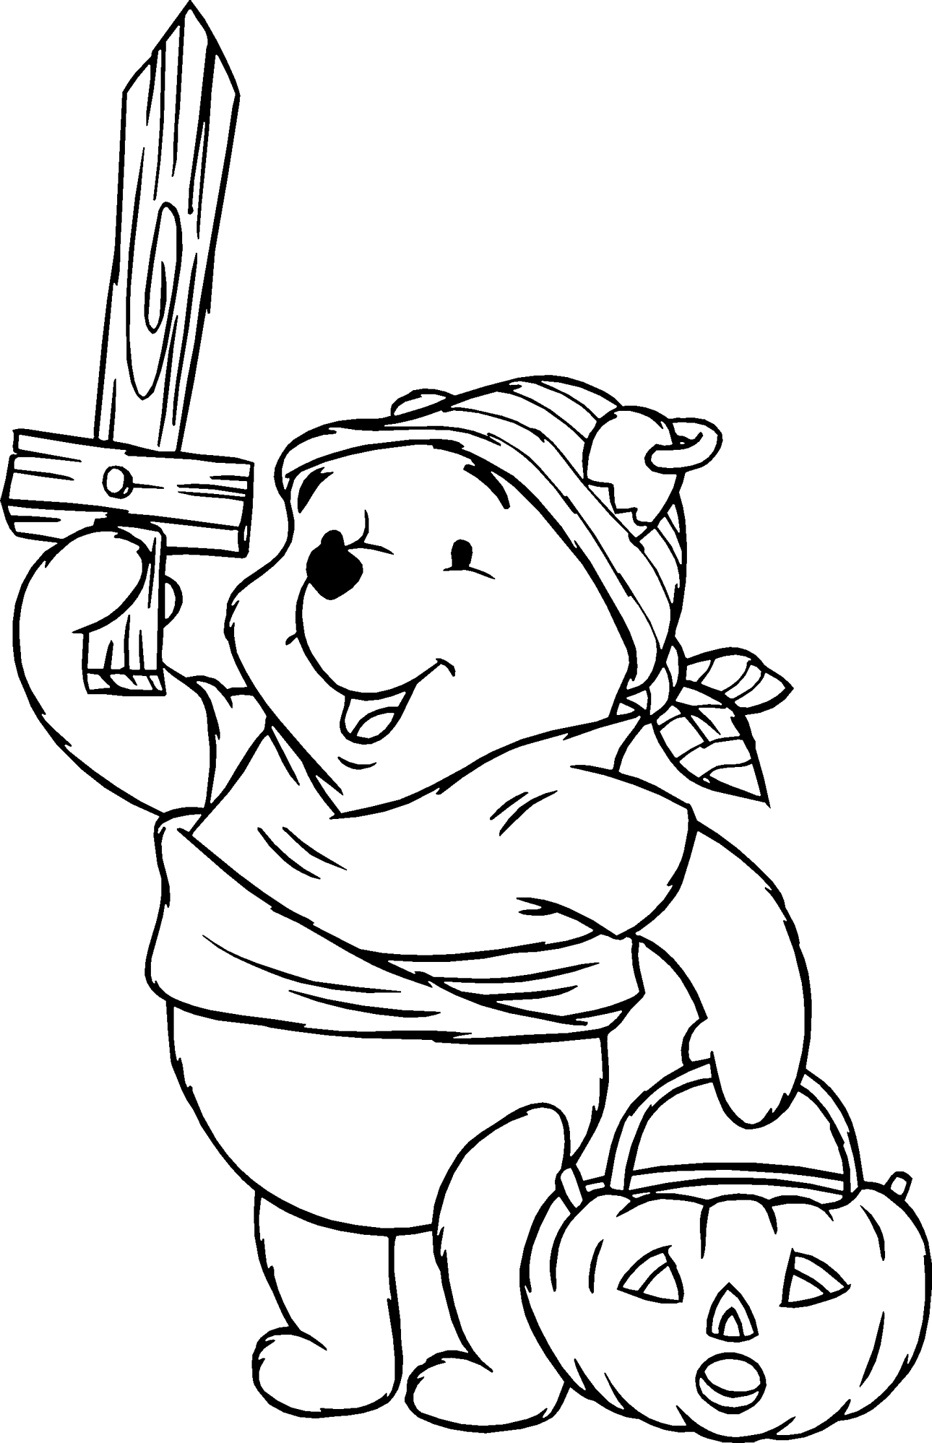 online halloween coloring sheets Archives